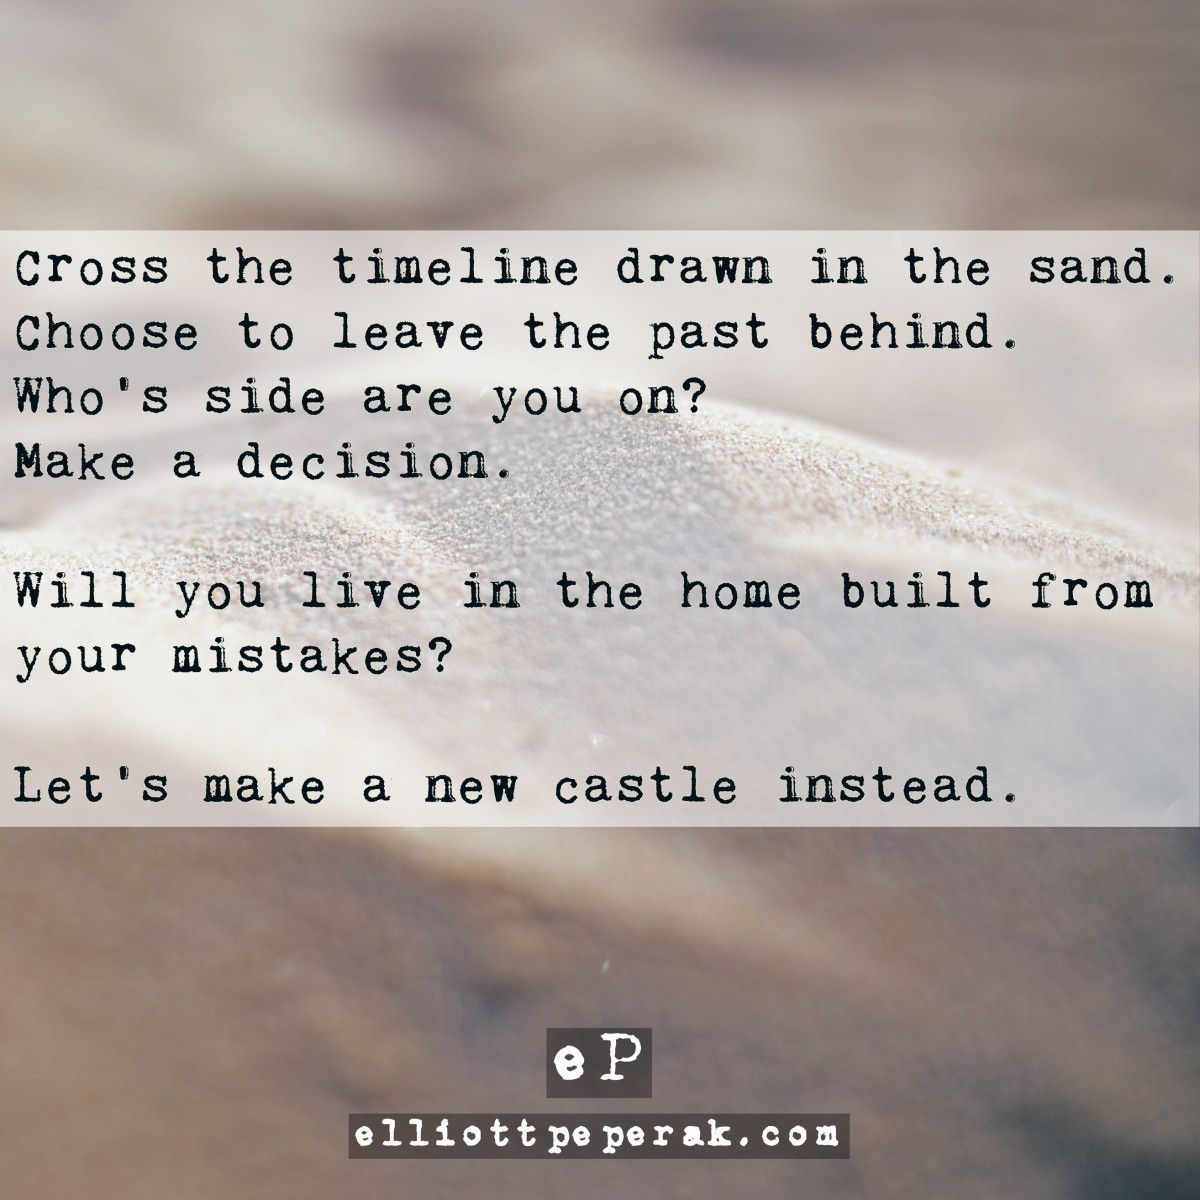 Quotes About Castles Cross The Timeline Drawn In The Sandlet's Make A New Castle